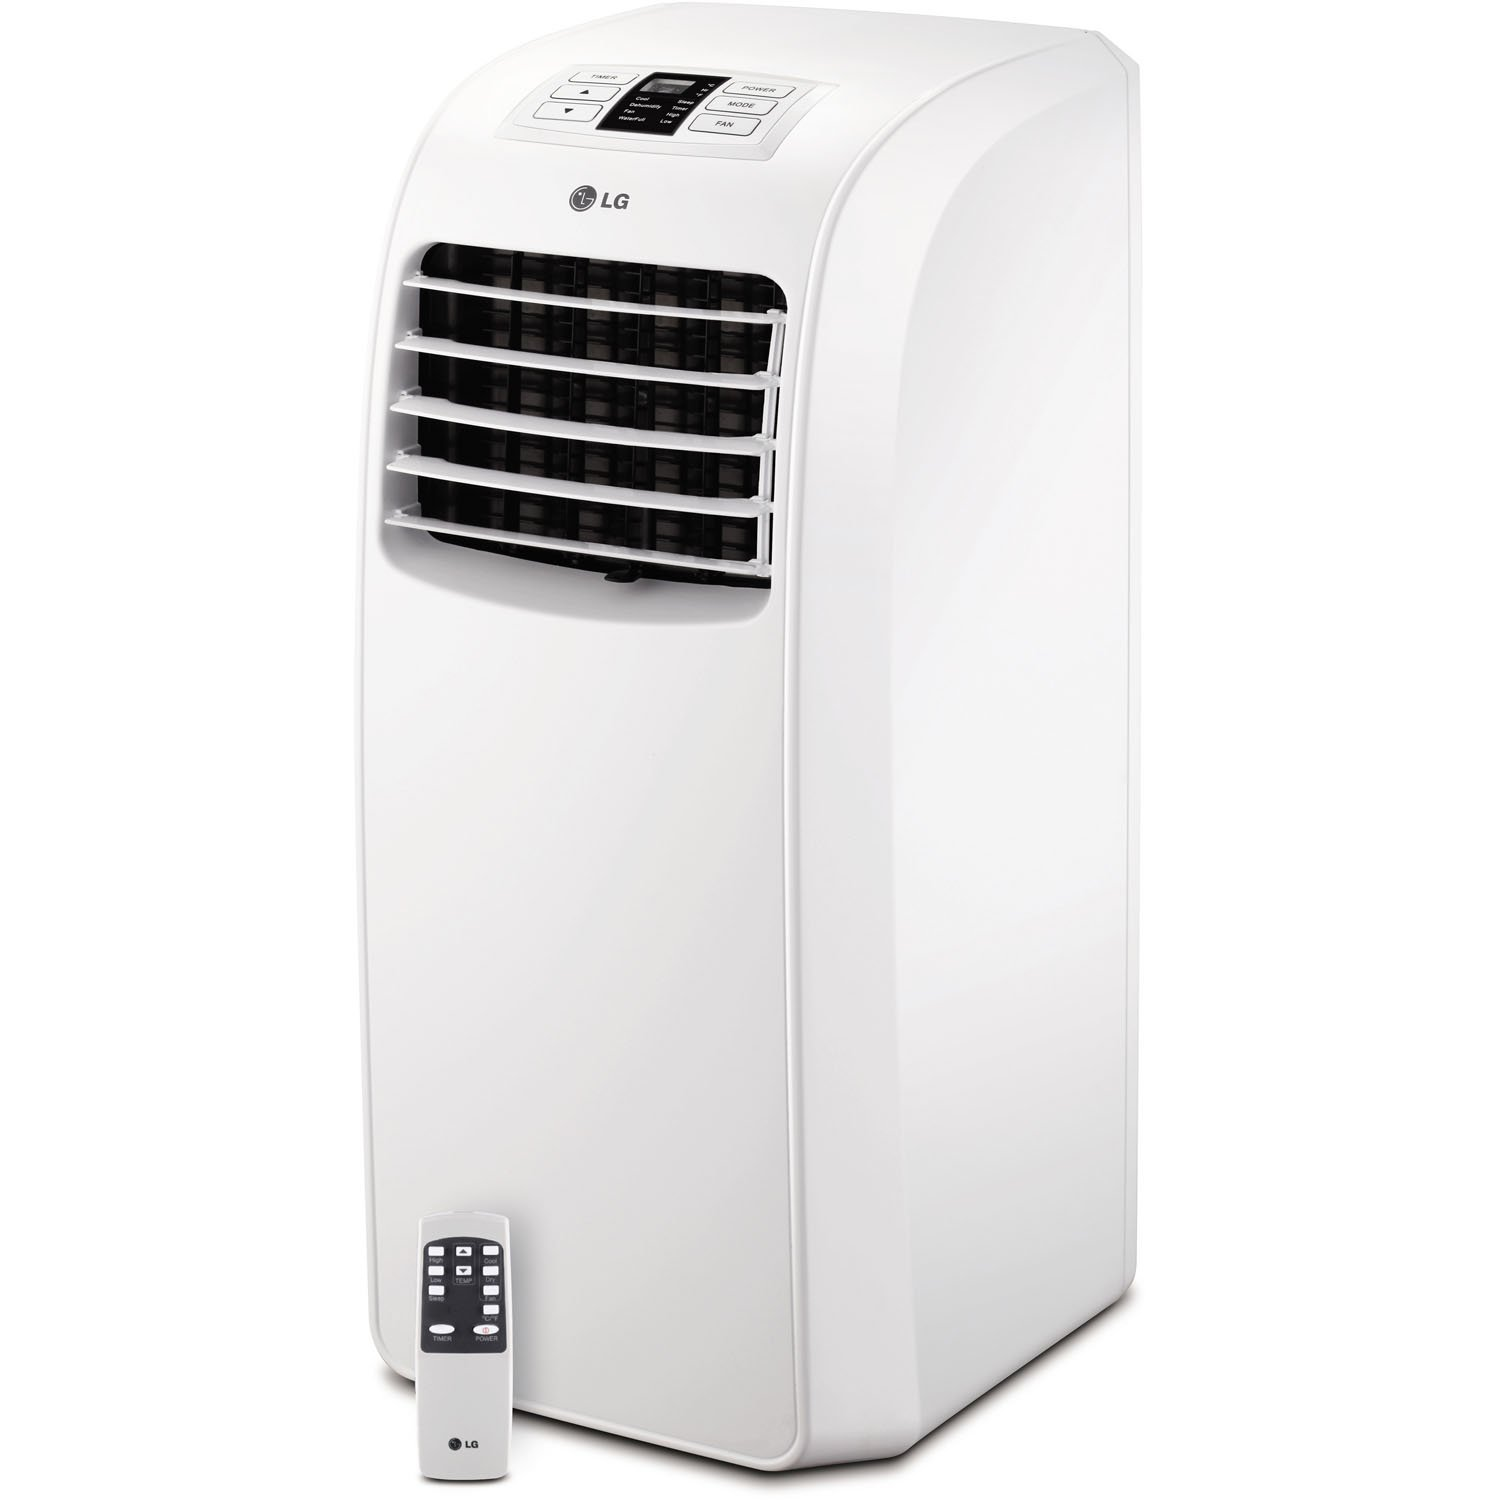 Top 10 Best Portable Air Conditioner Reviews - [2018 Guide]